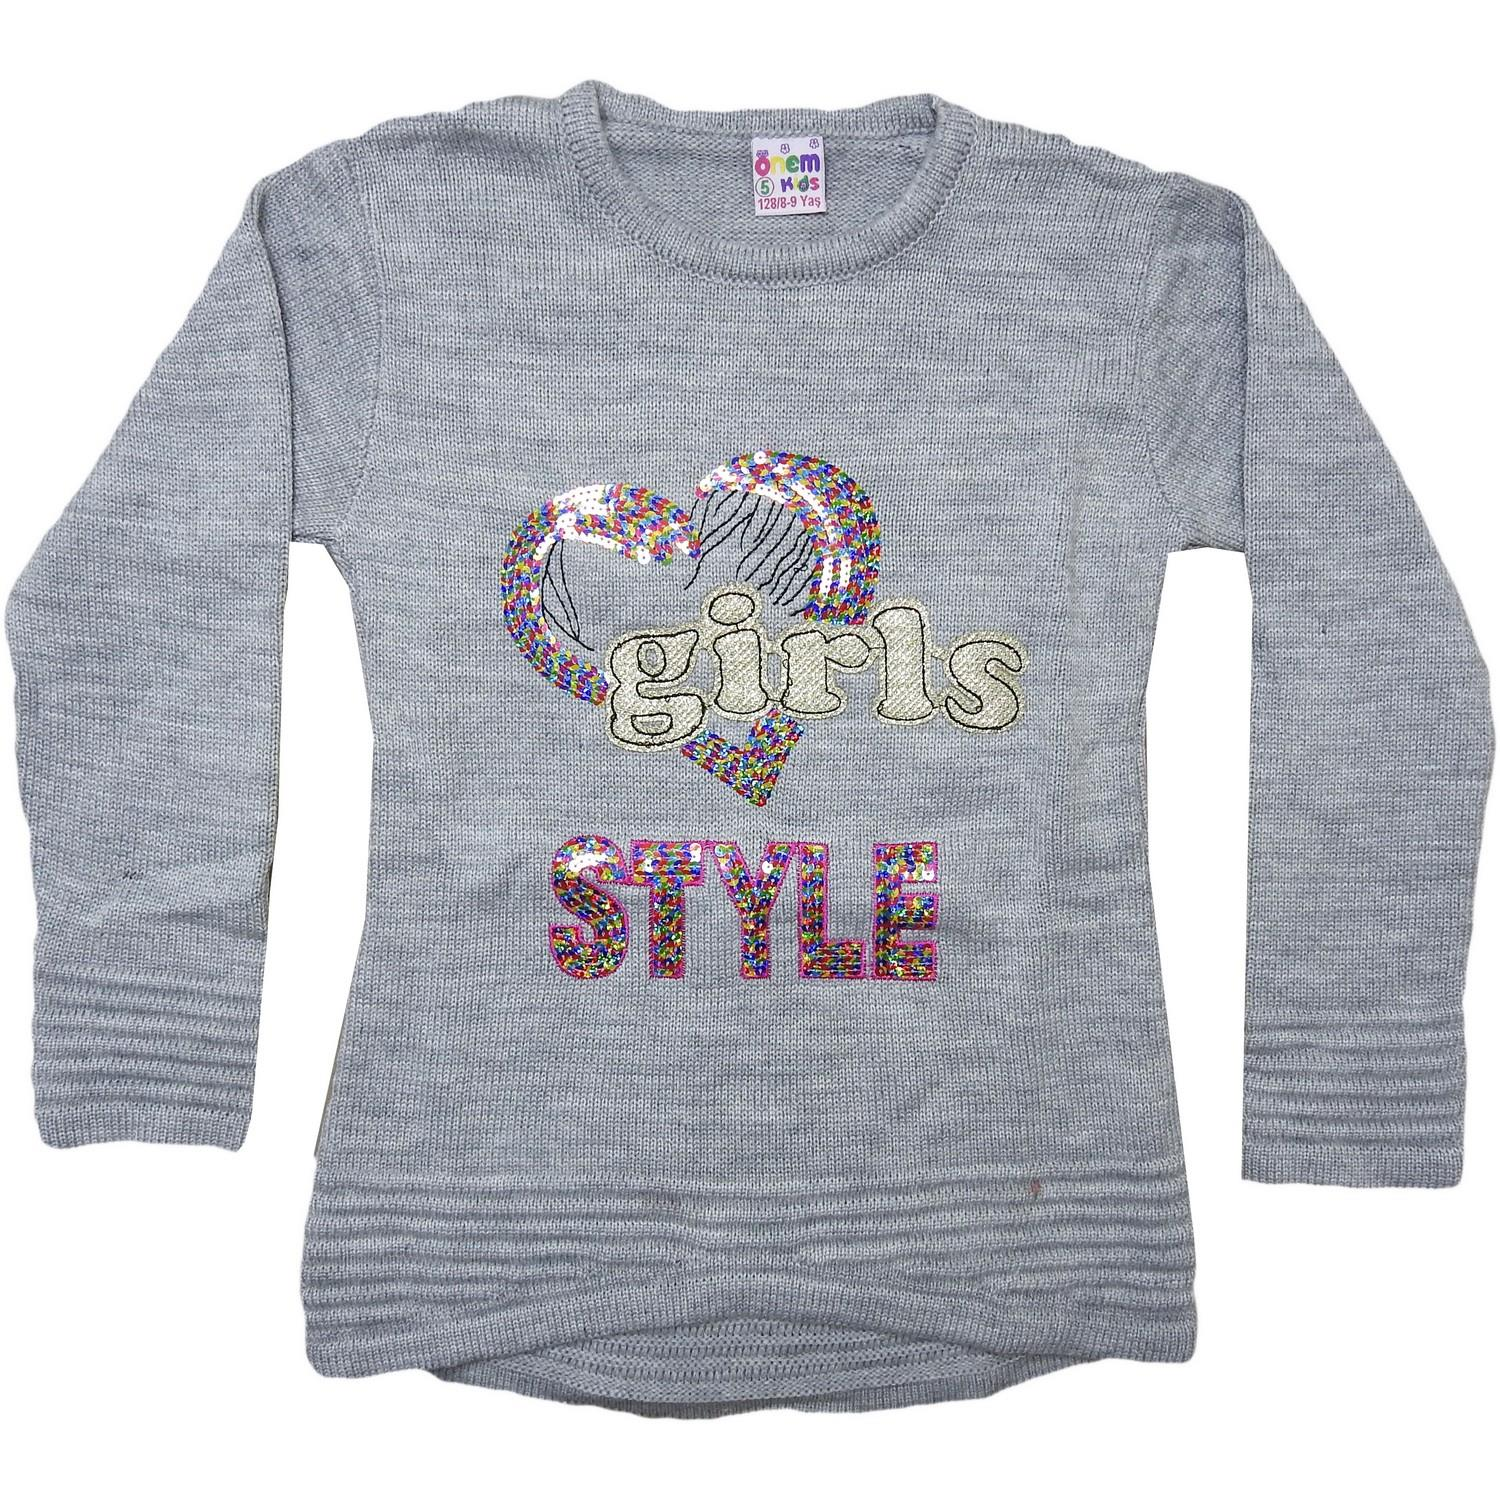 604 wholesale girls childrens sweater girls style embroidery 5-7-9 age